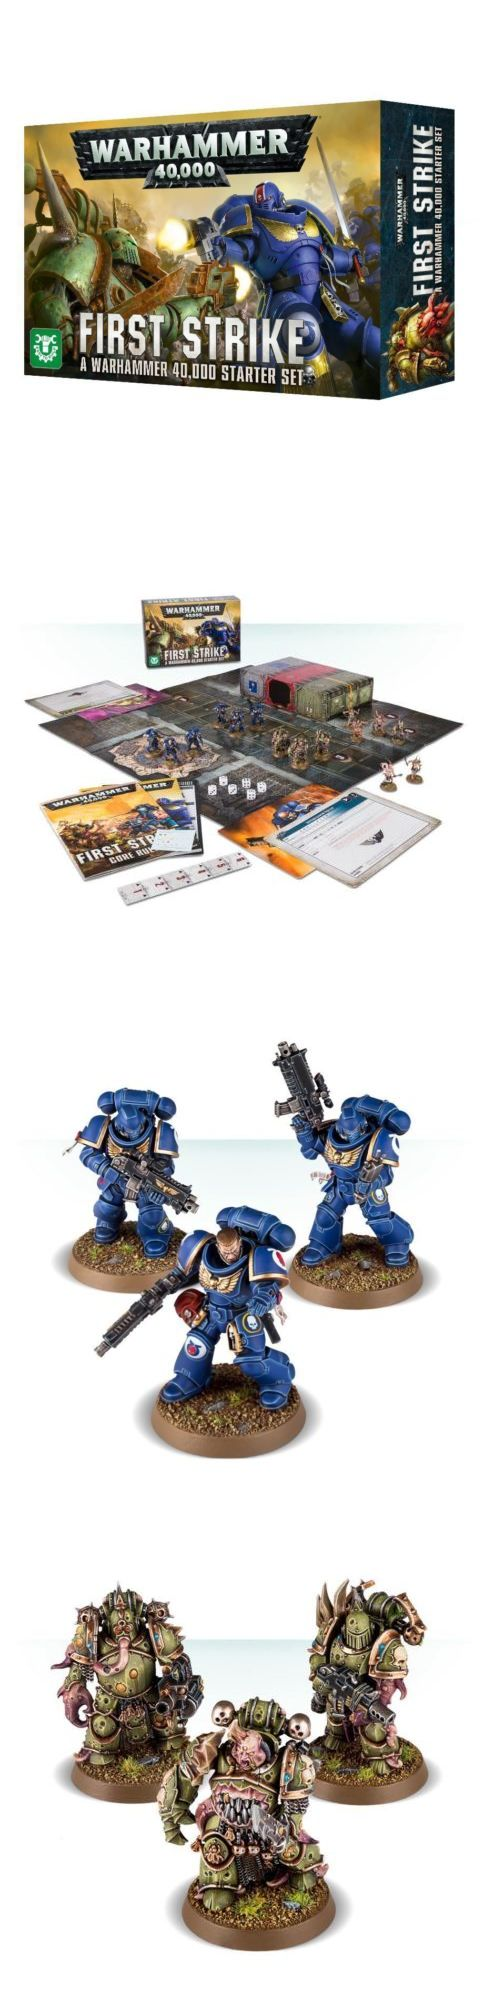 40K Starter Sets 183472 First Strike A Warhammer 40,000